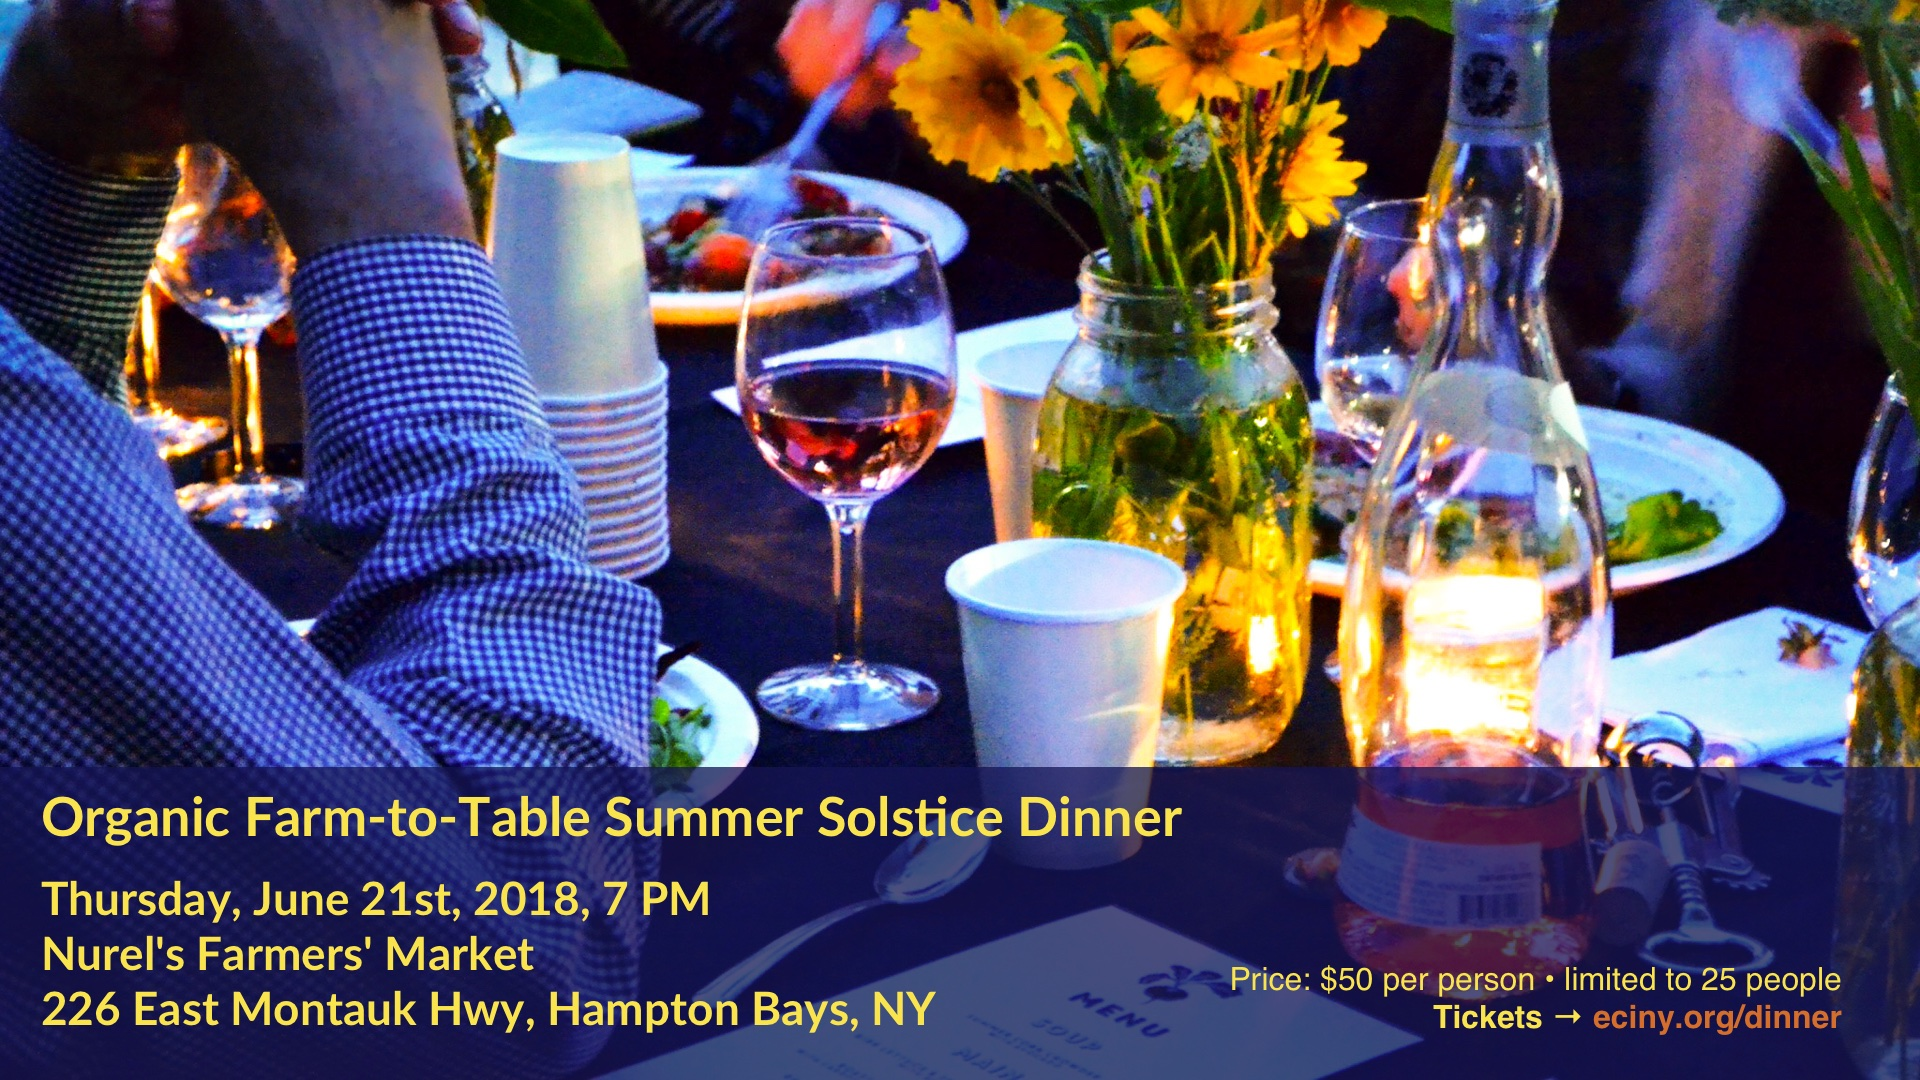 Organic Farm-to-Table Summer Solstice Dinner - June 21, 2018 - FB cover 1920x1080.jpg